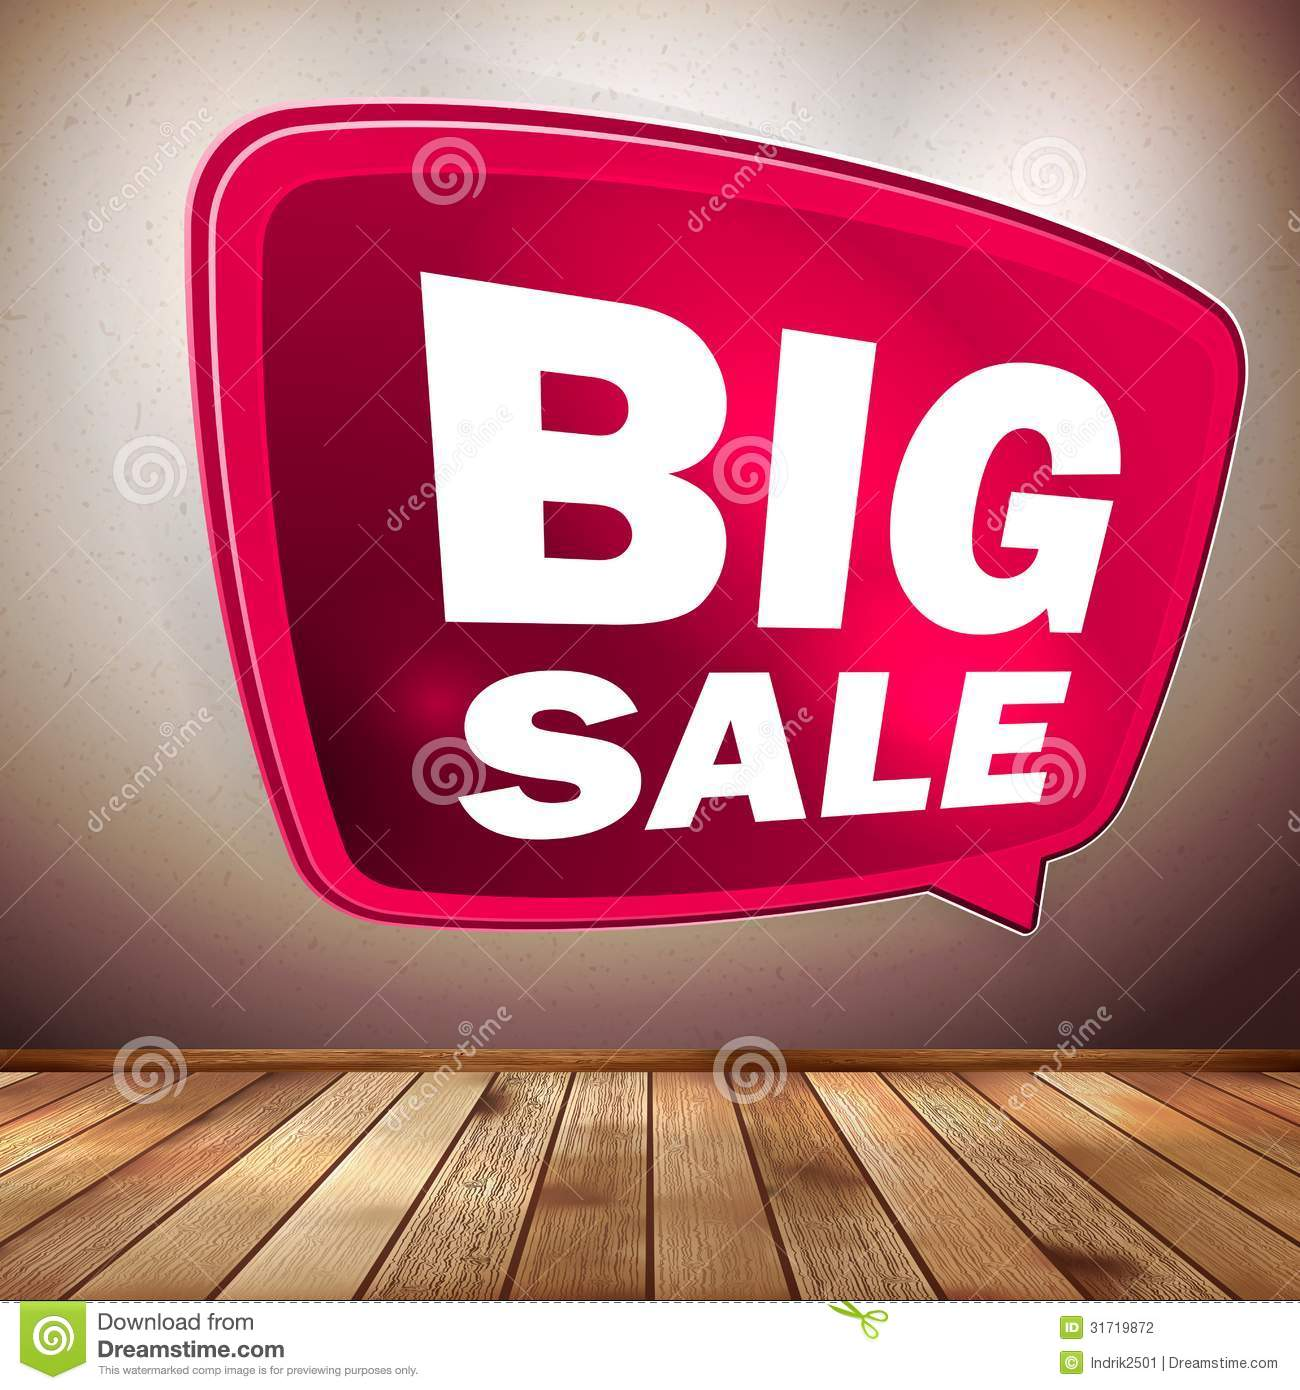 Red big sale speech bubble on wood floor. EPS 10 - Red Big Sale Speech Bubble On Wood Floor. EPS 10 Stock Photography